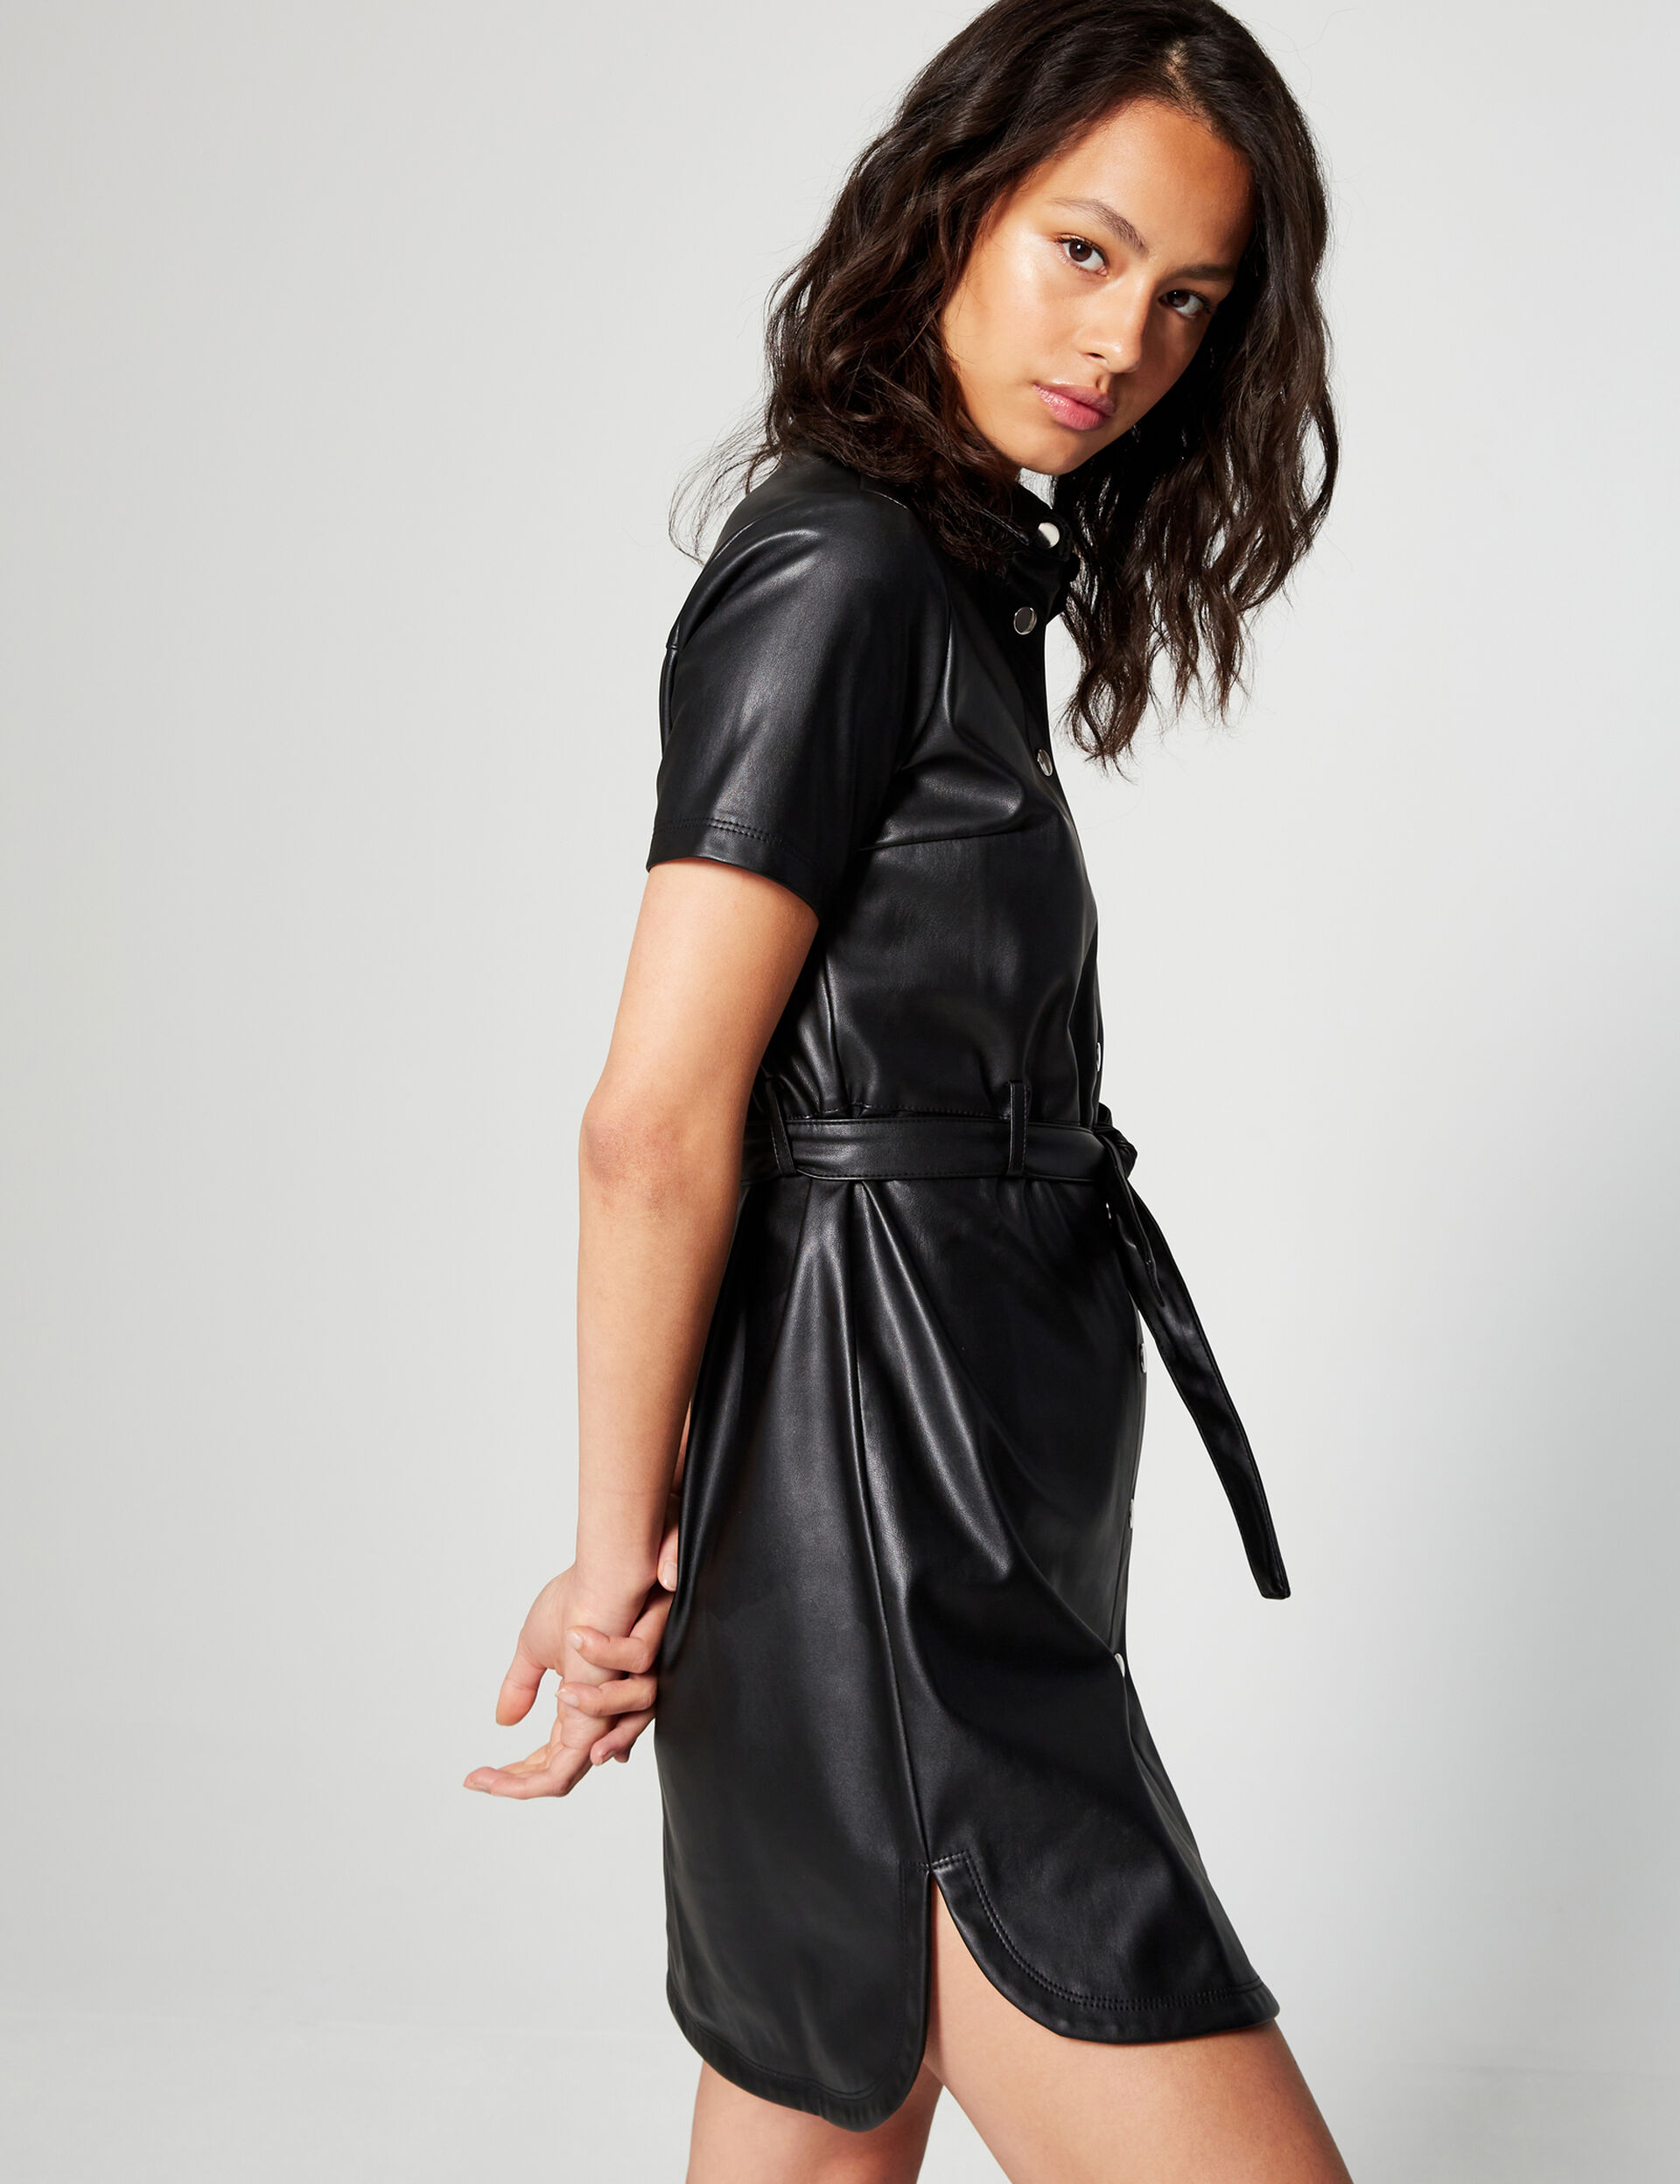 A-line dress in leatherette